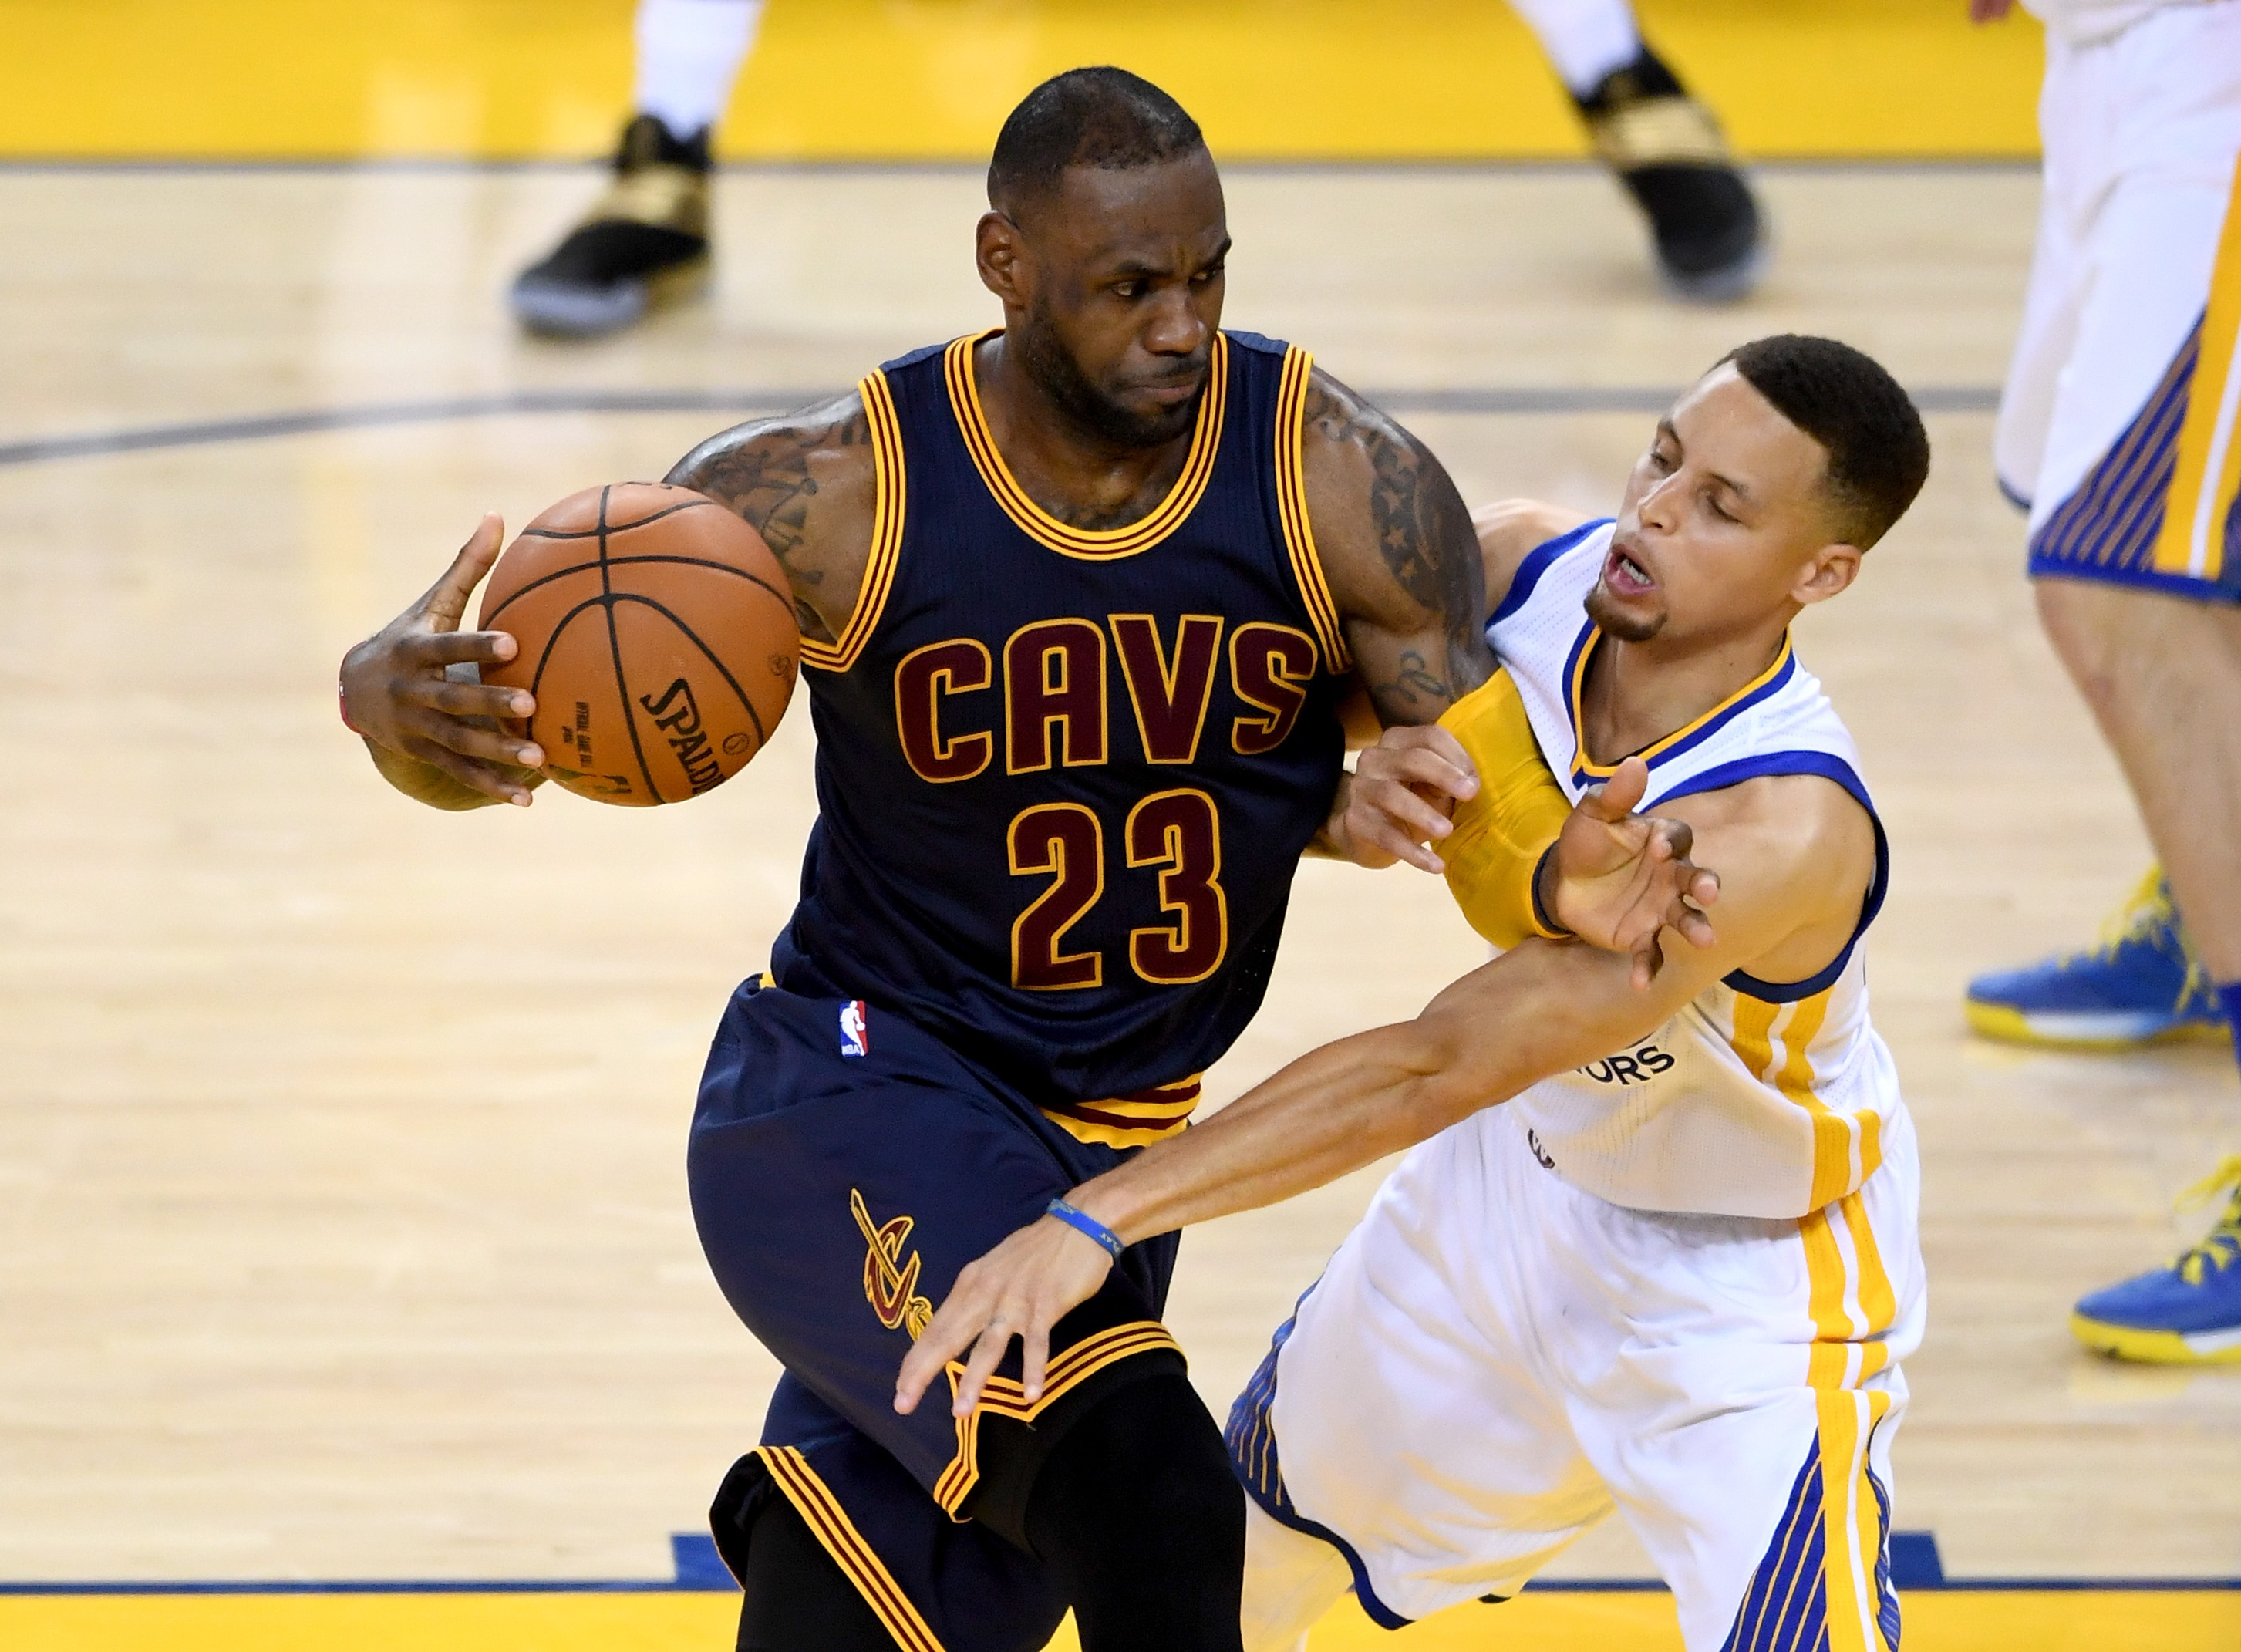 cavs looking for more